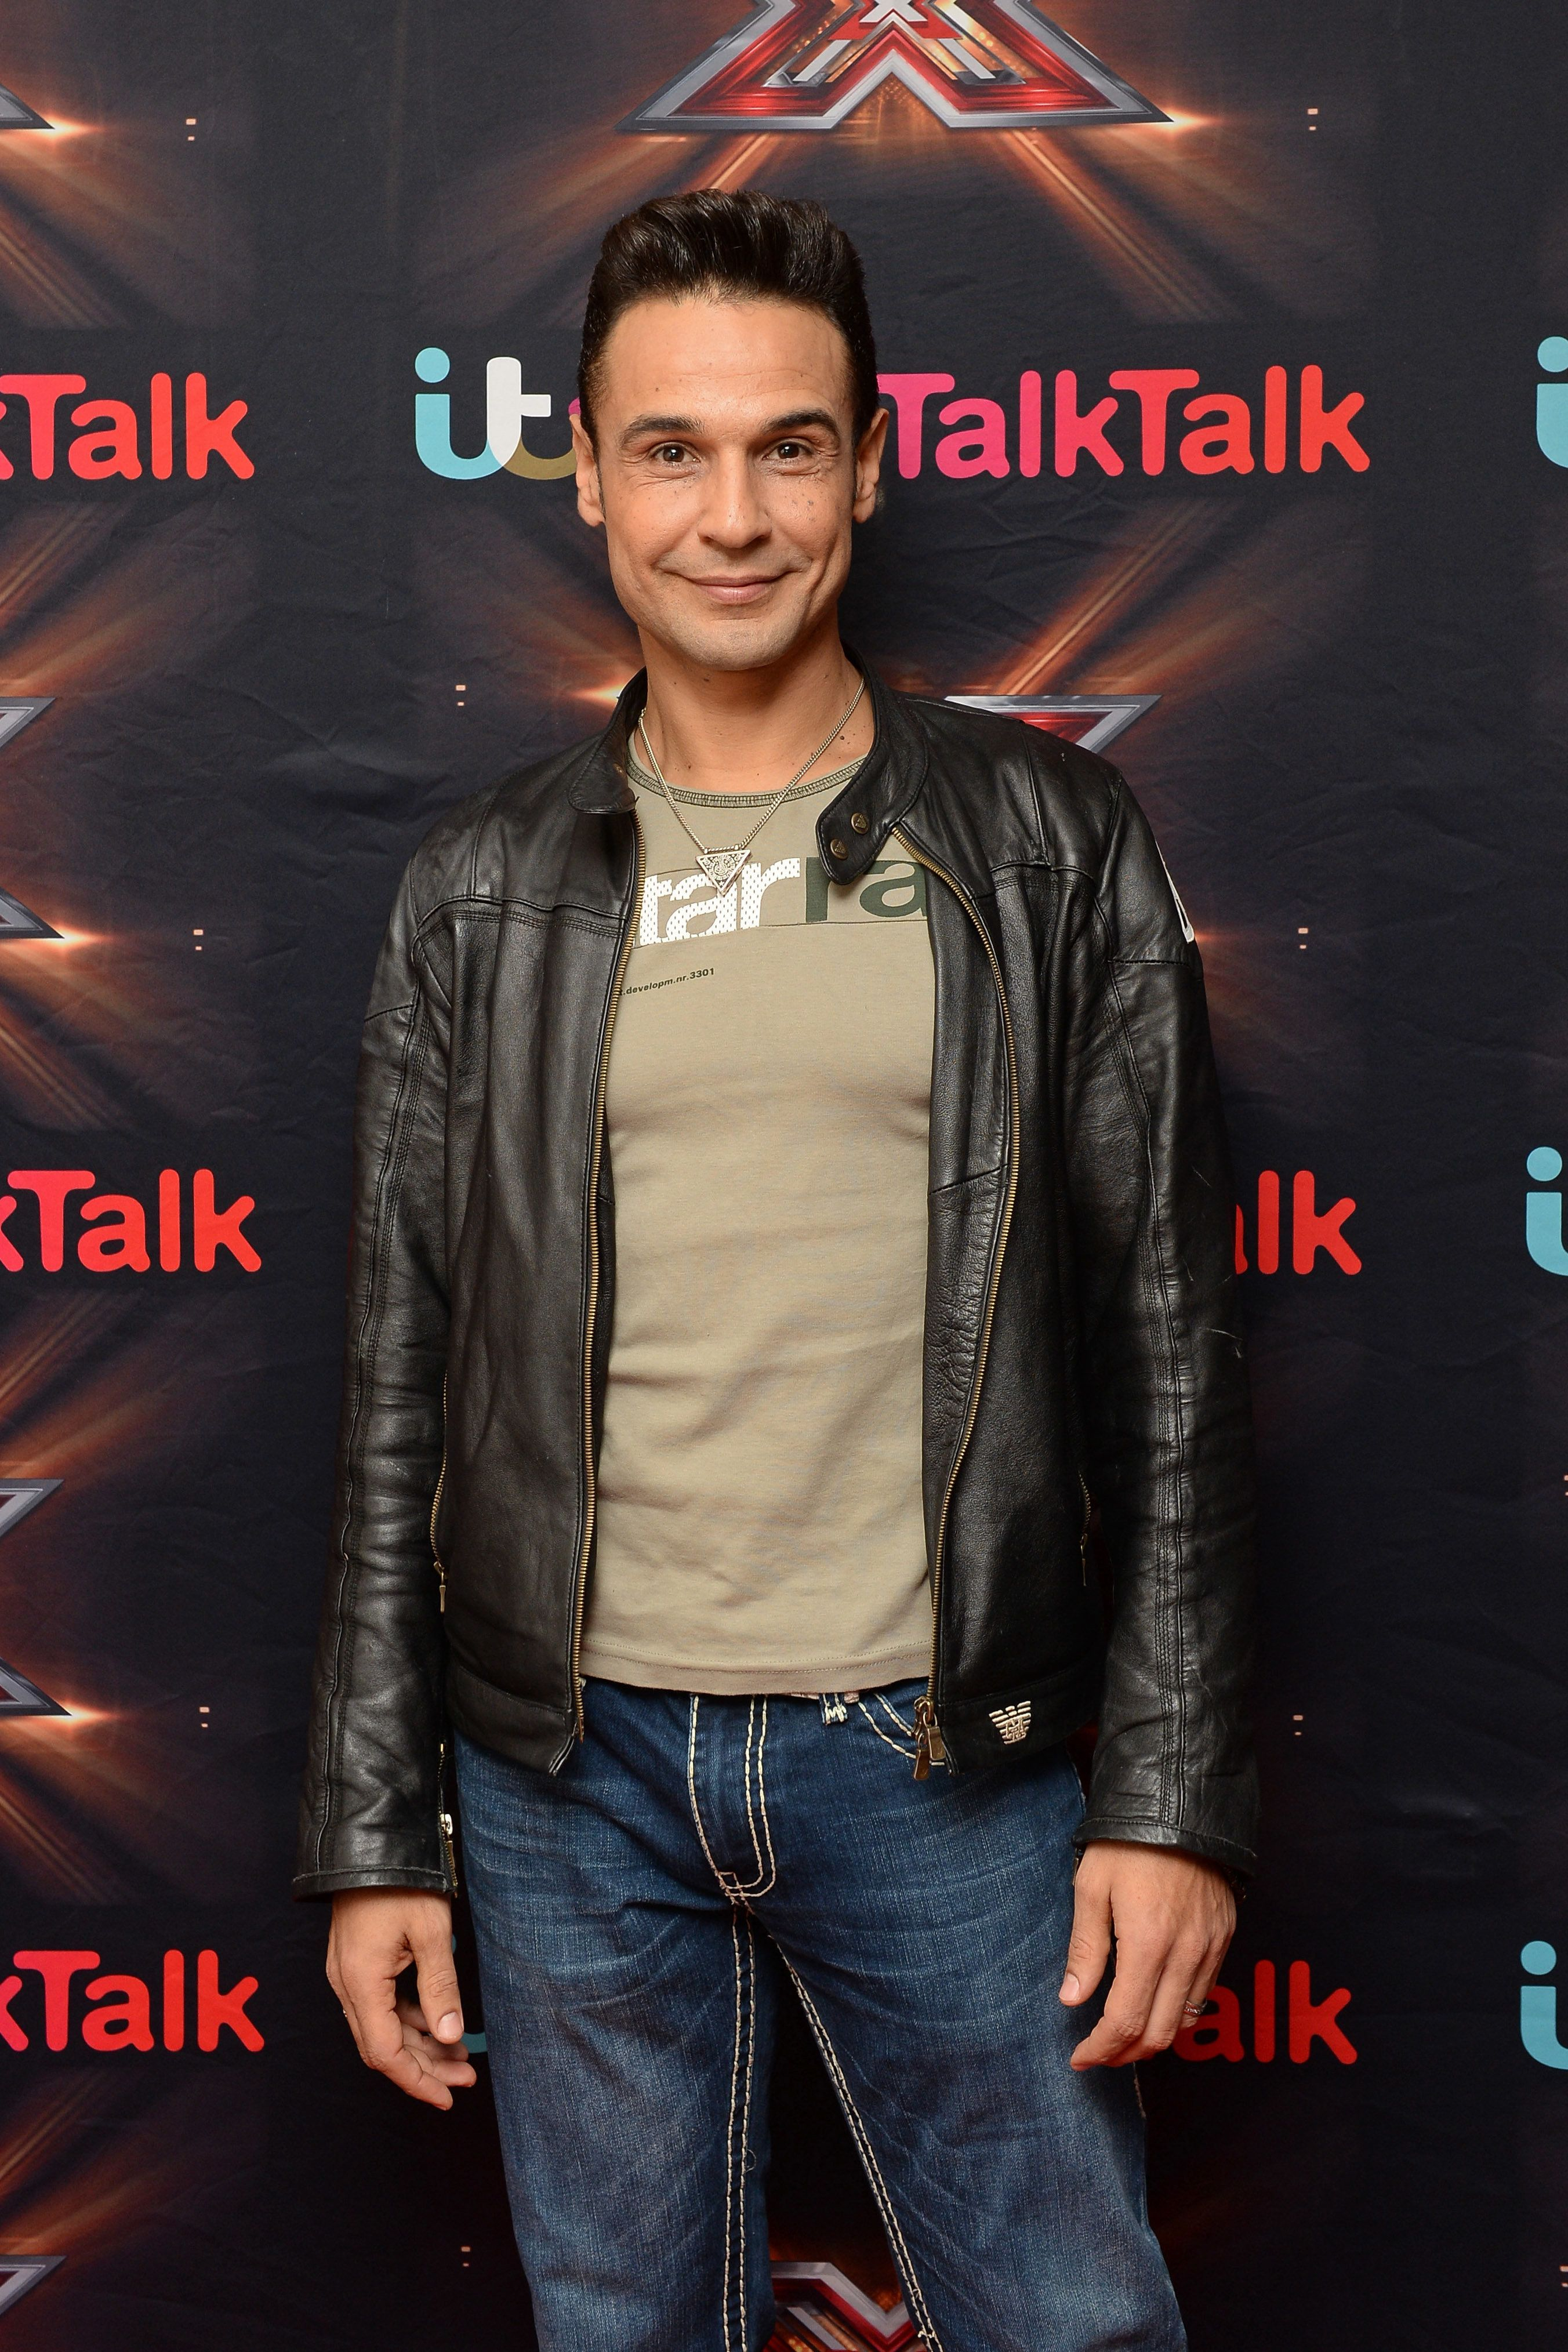 'X Factor' Star Chico Slimani Gives Health Update After Suffering A